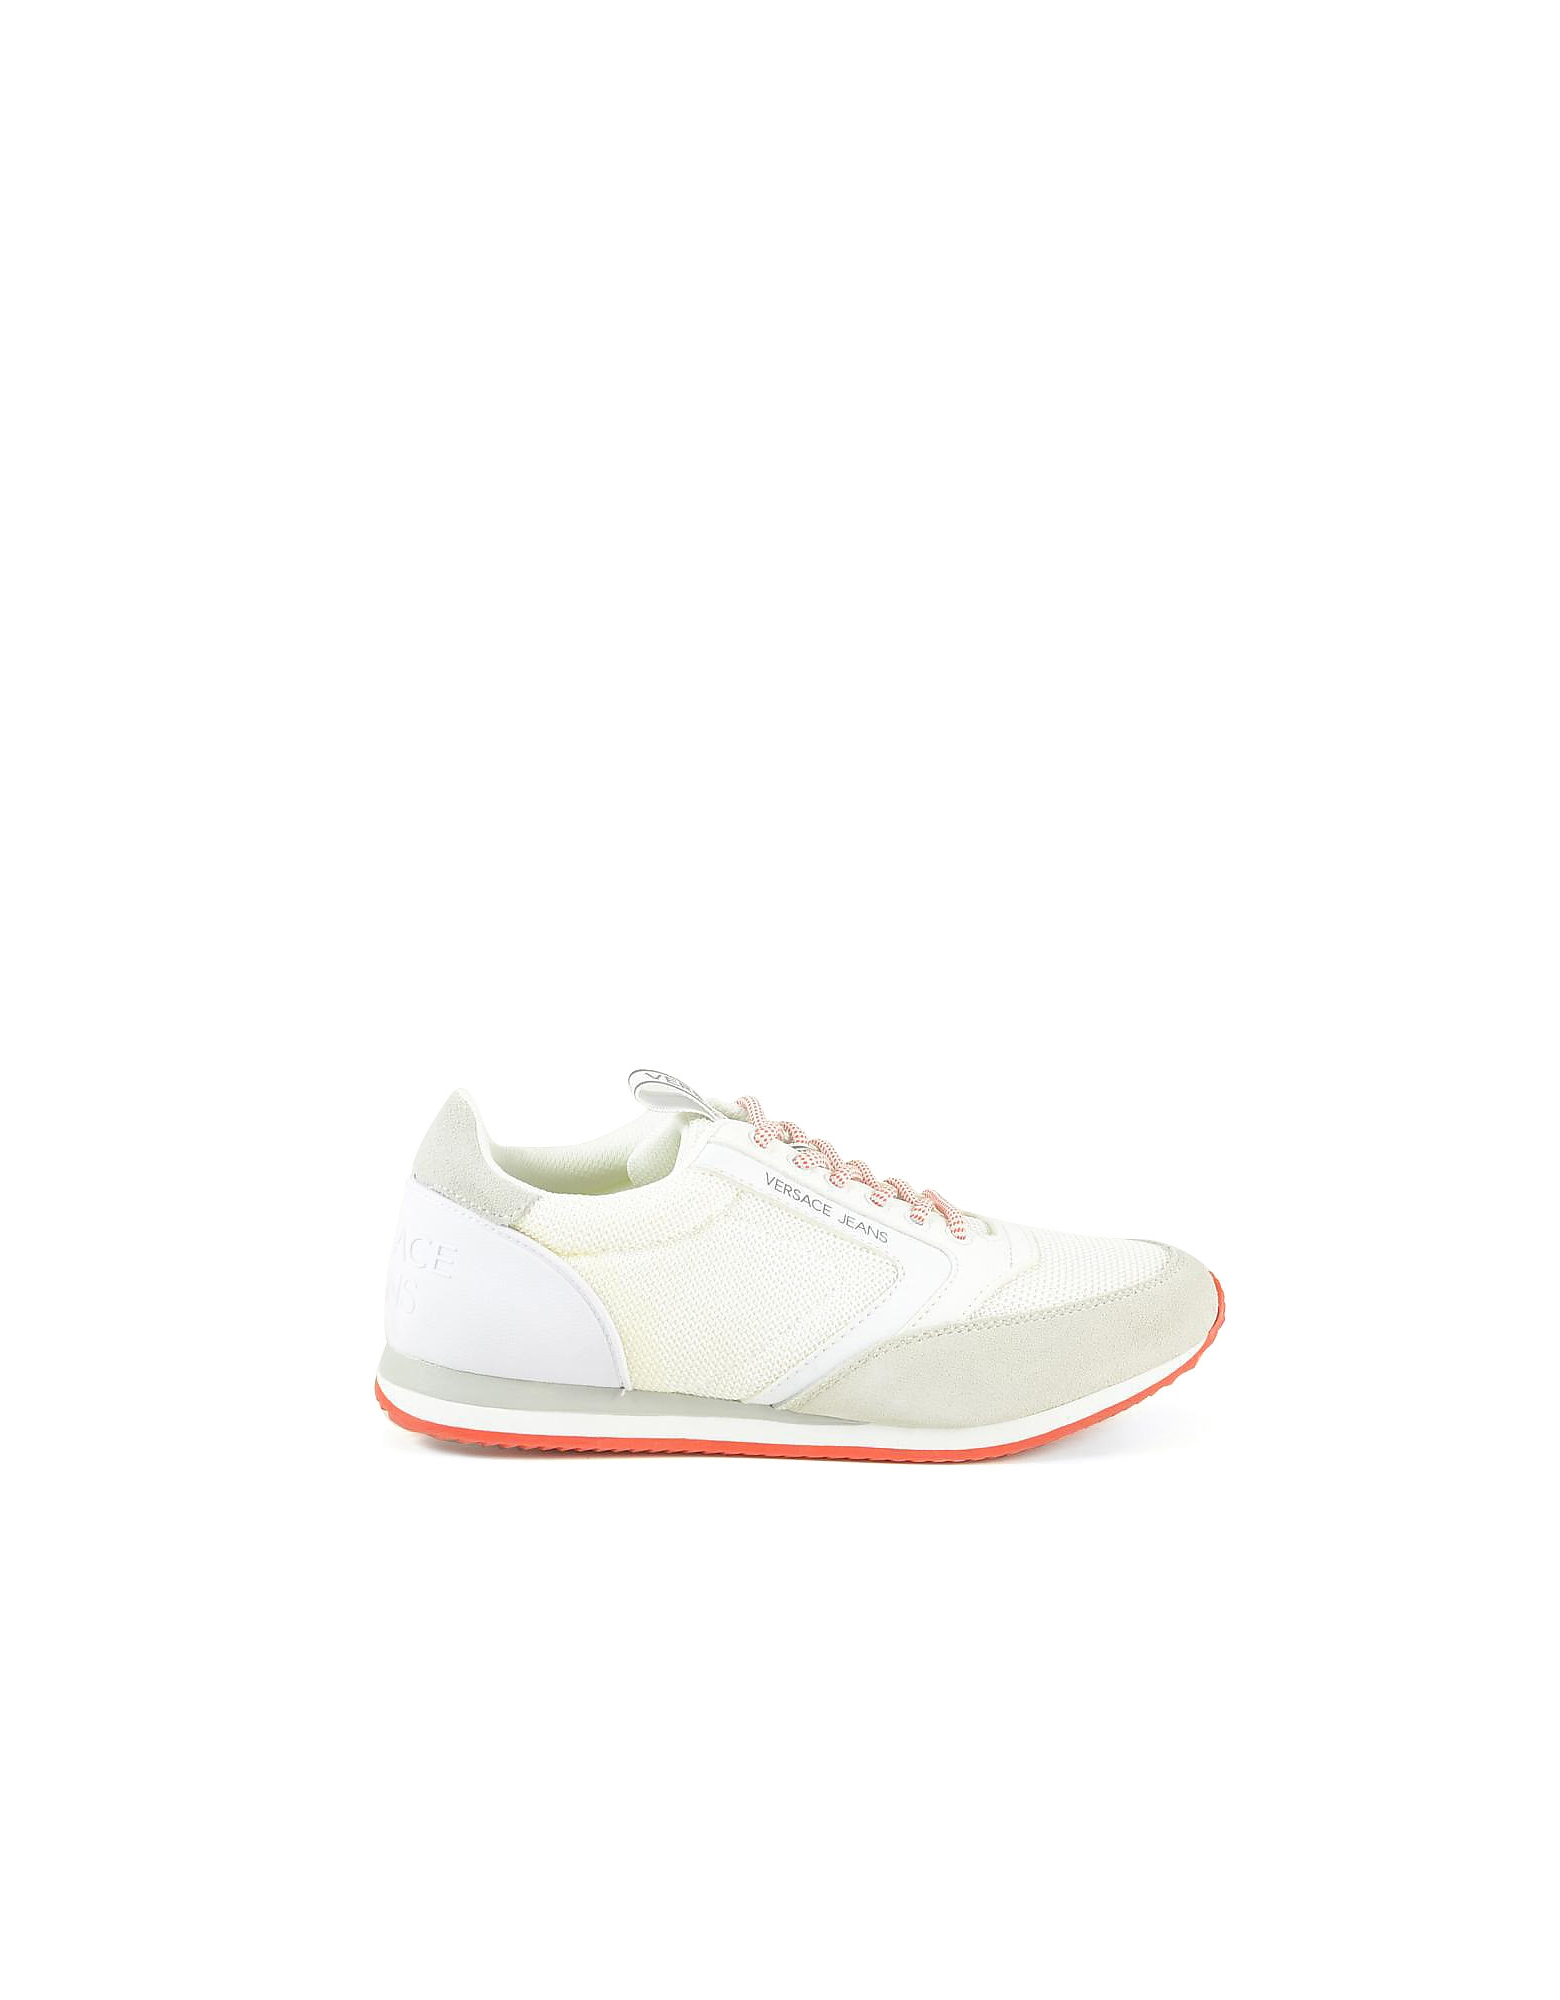 Versace Jeans Designer Shoes, New Running White Mesh and Suede Men's Sneakers